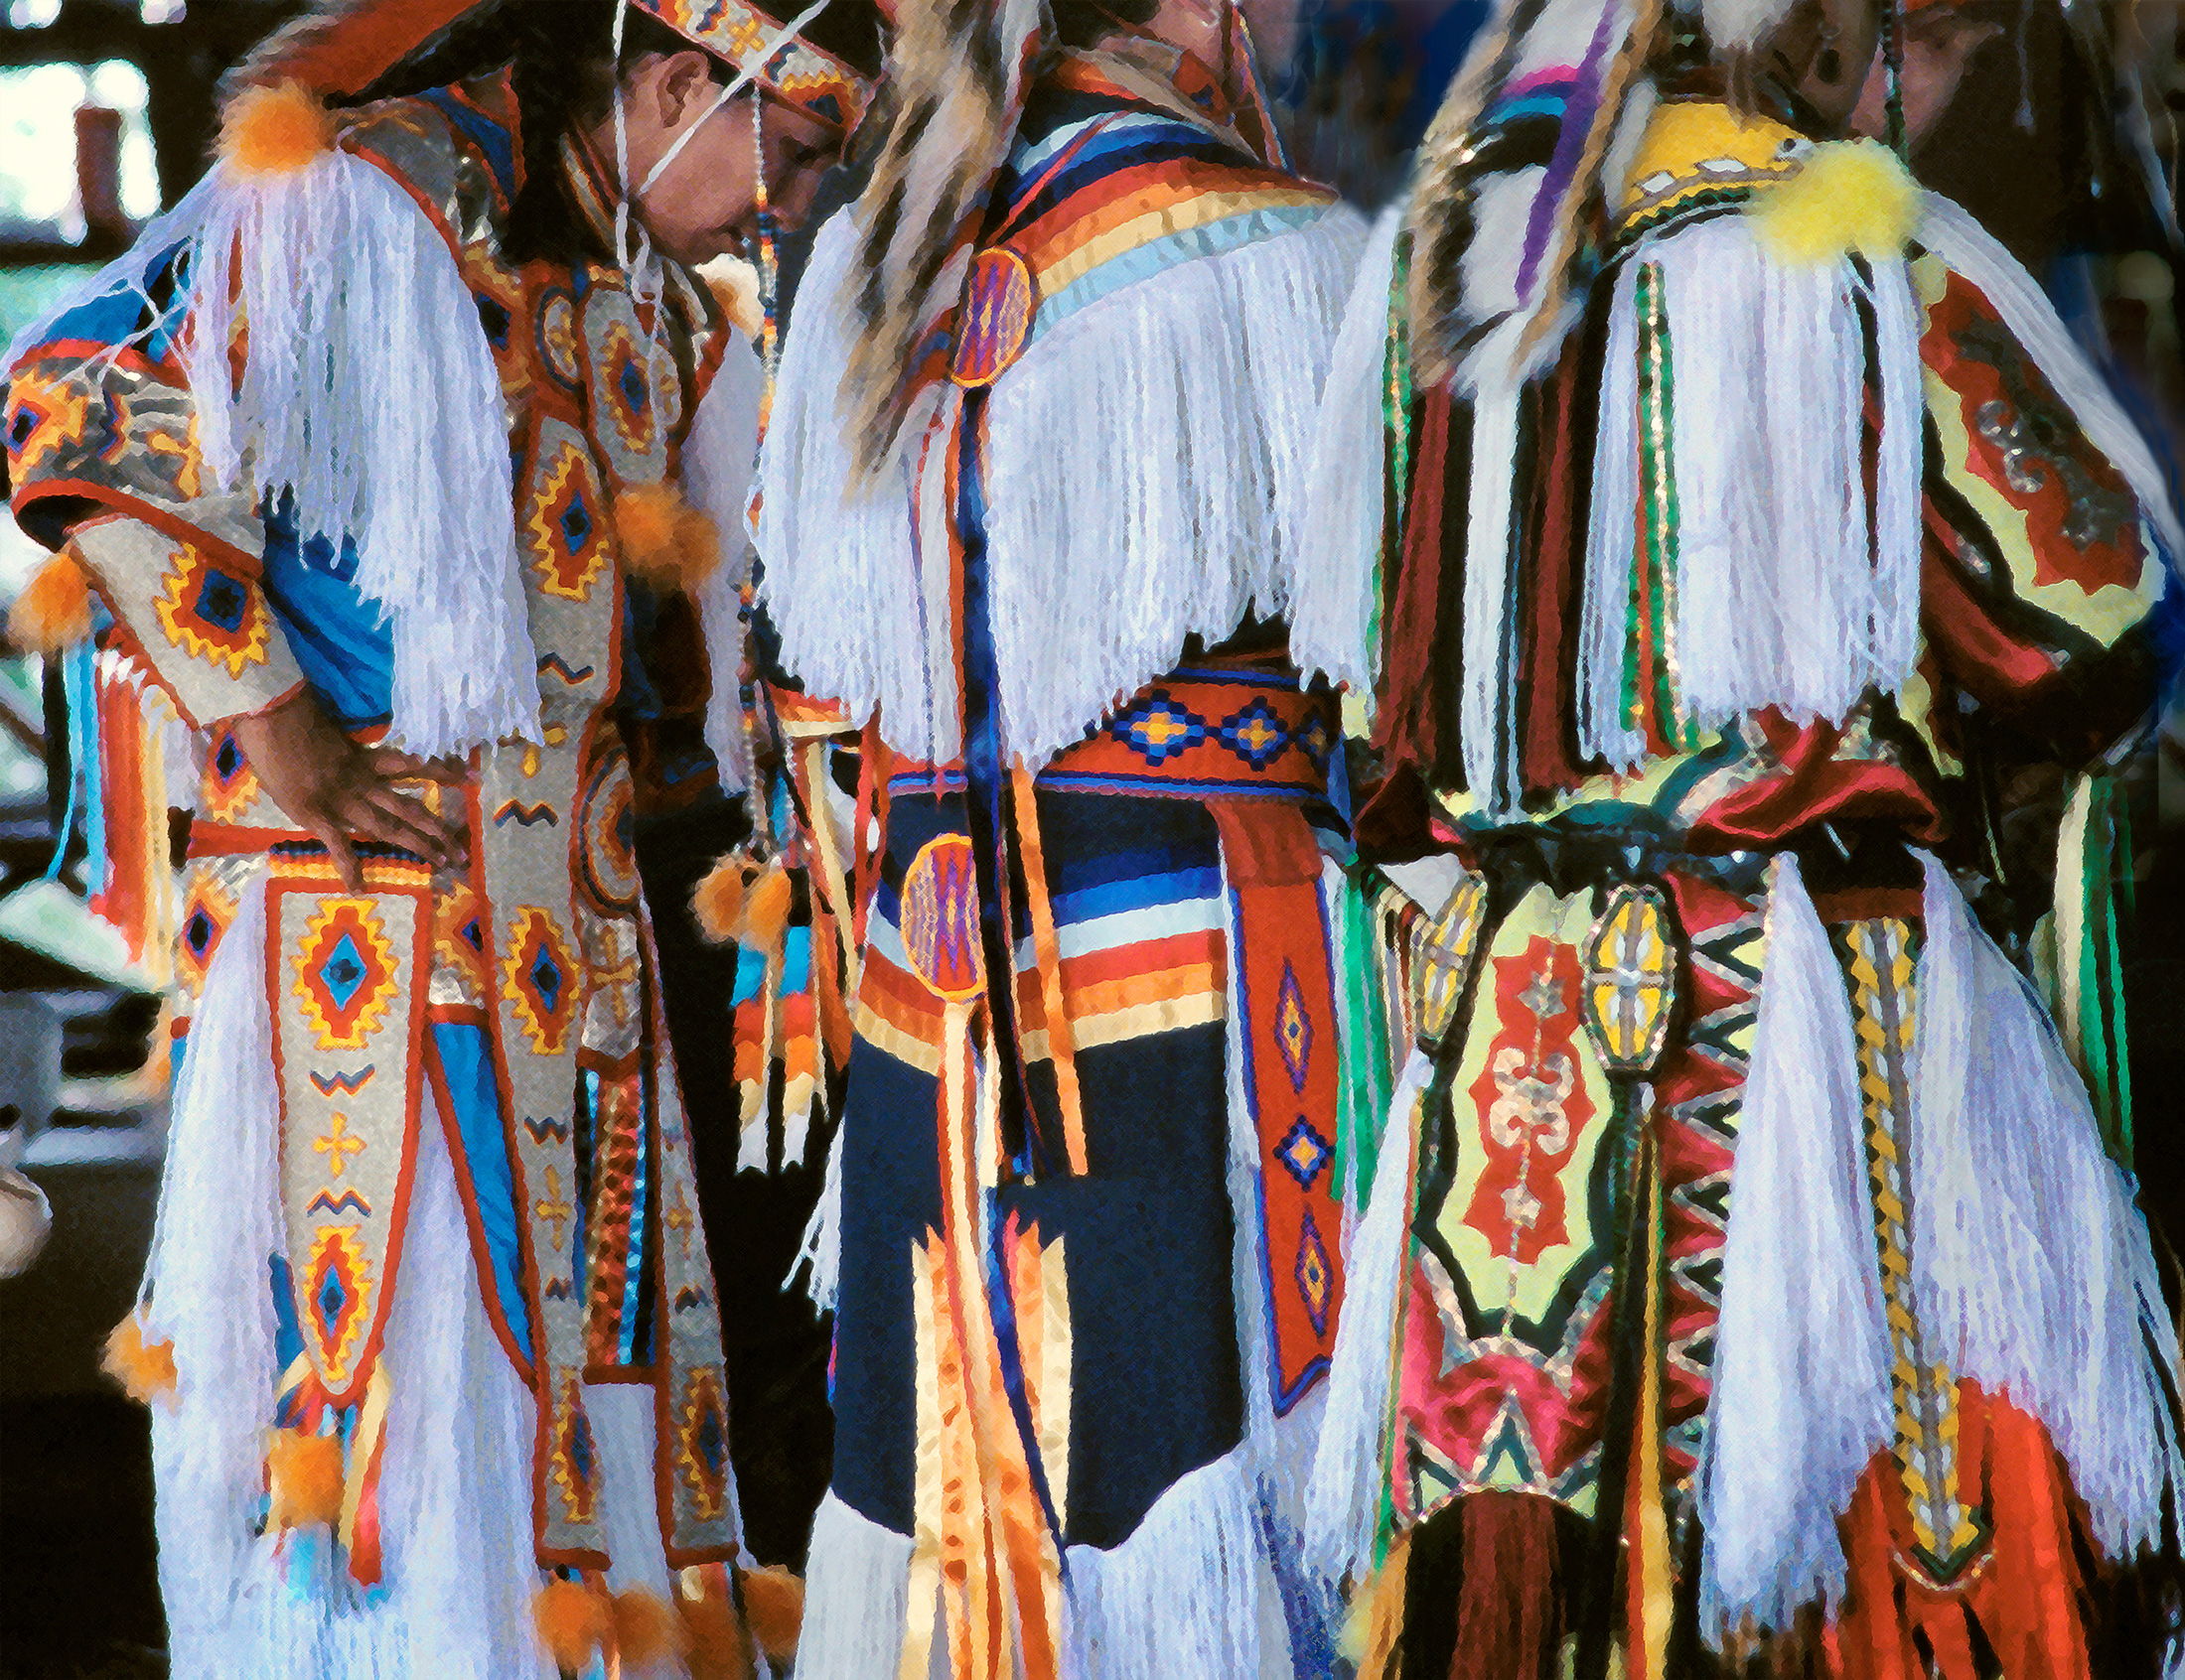 New Efforts to Increase Tourism in Indian Country